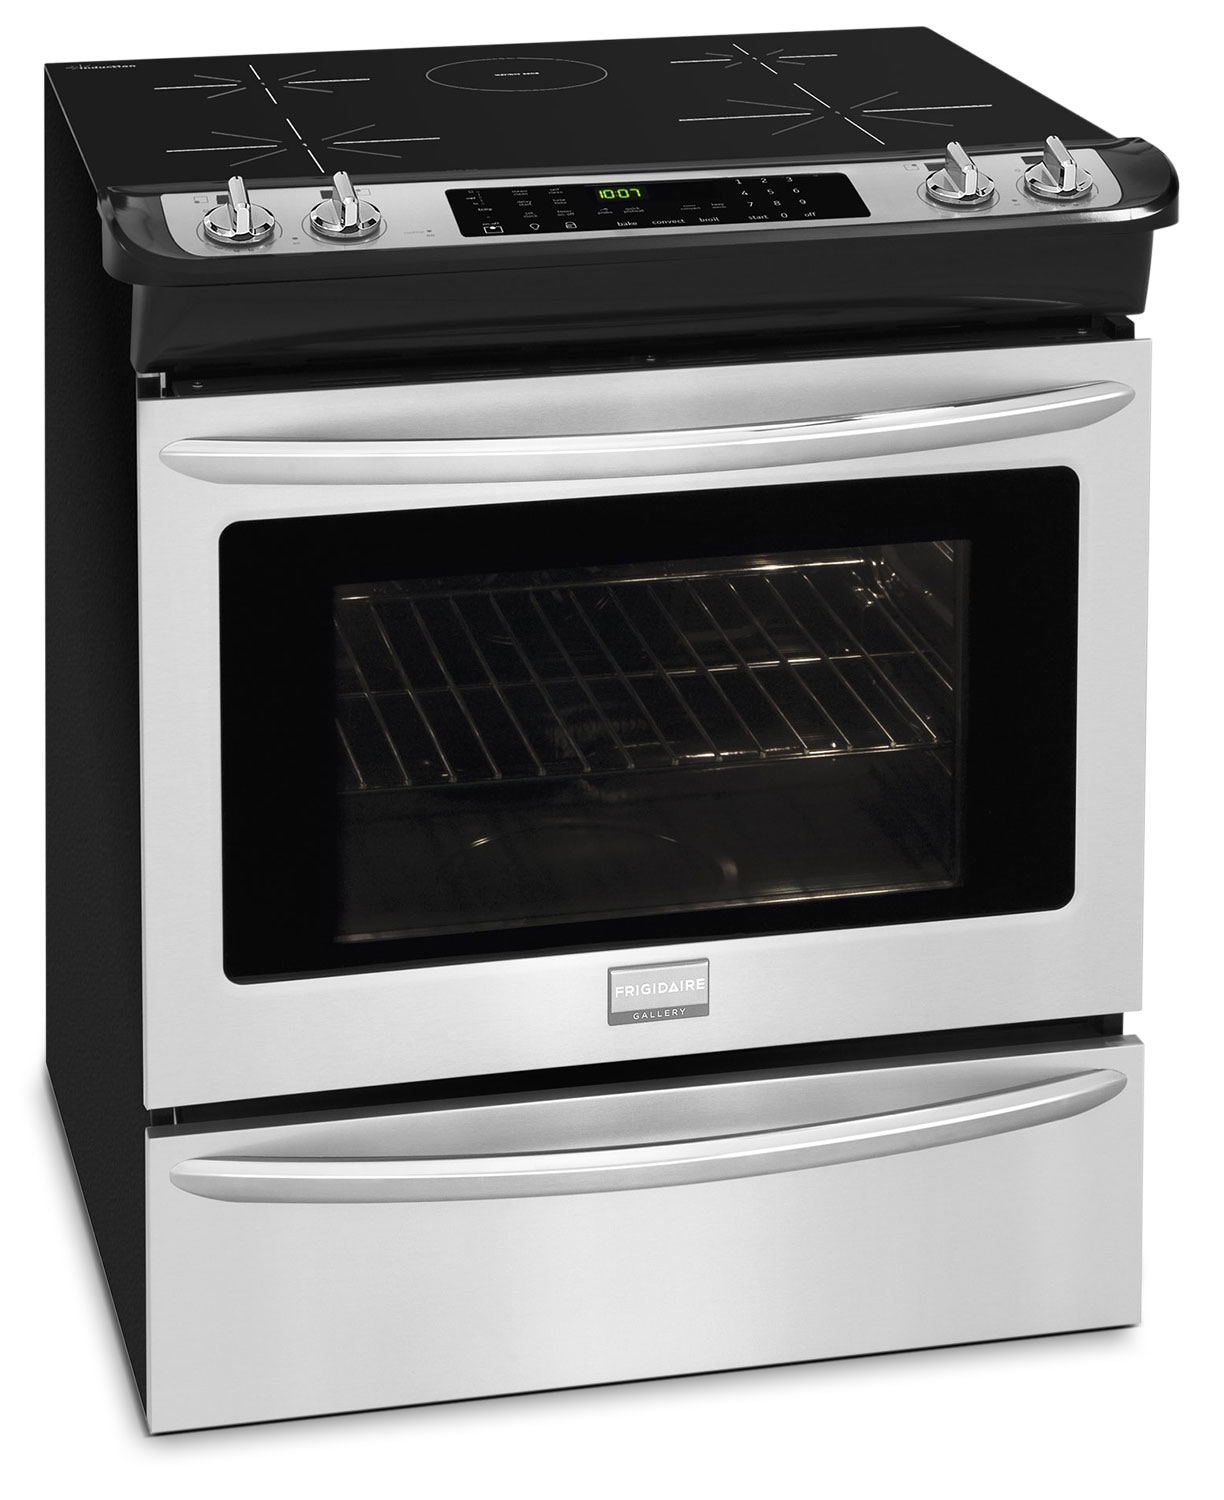 Cooking Products - Frigidaire Gallery Stainless Steel Slide-In Induction Range (4.6 Cu. Ft.) - CGIS3065PF